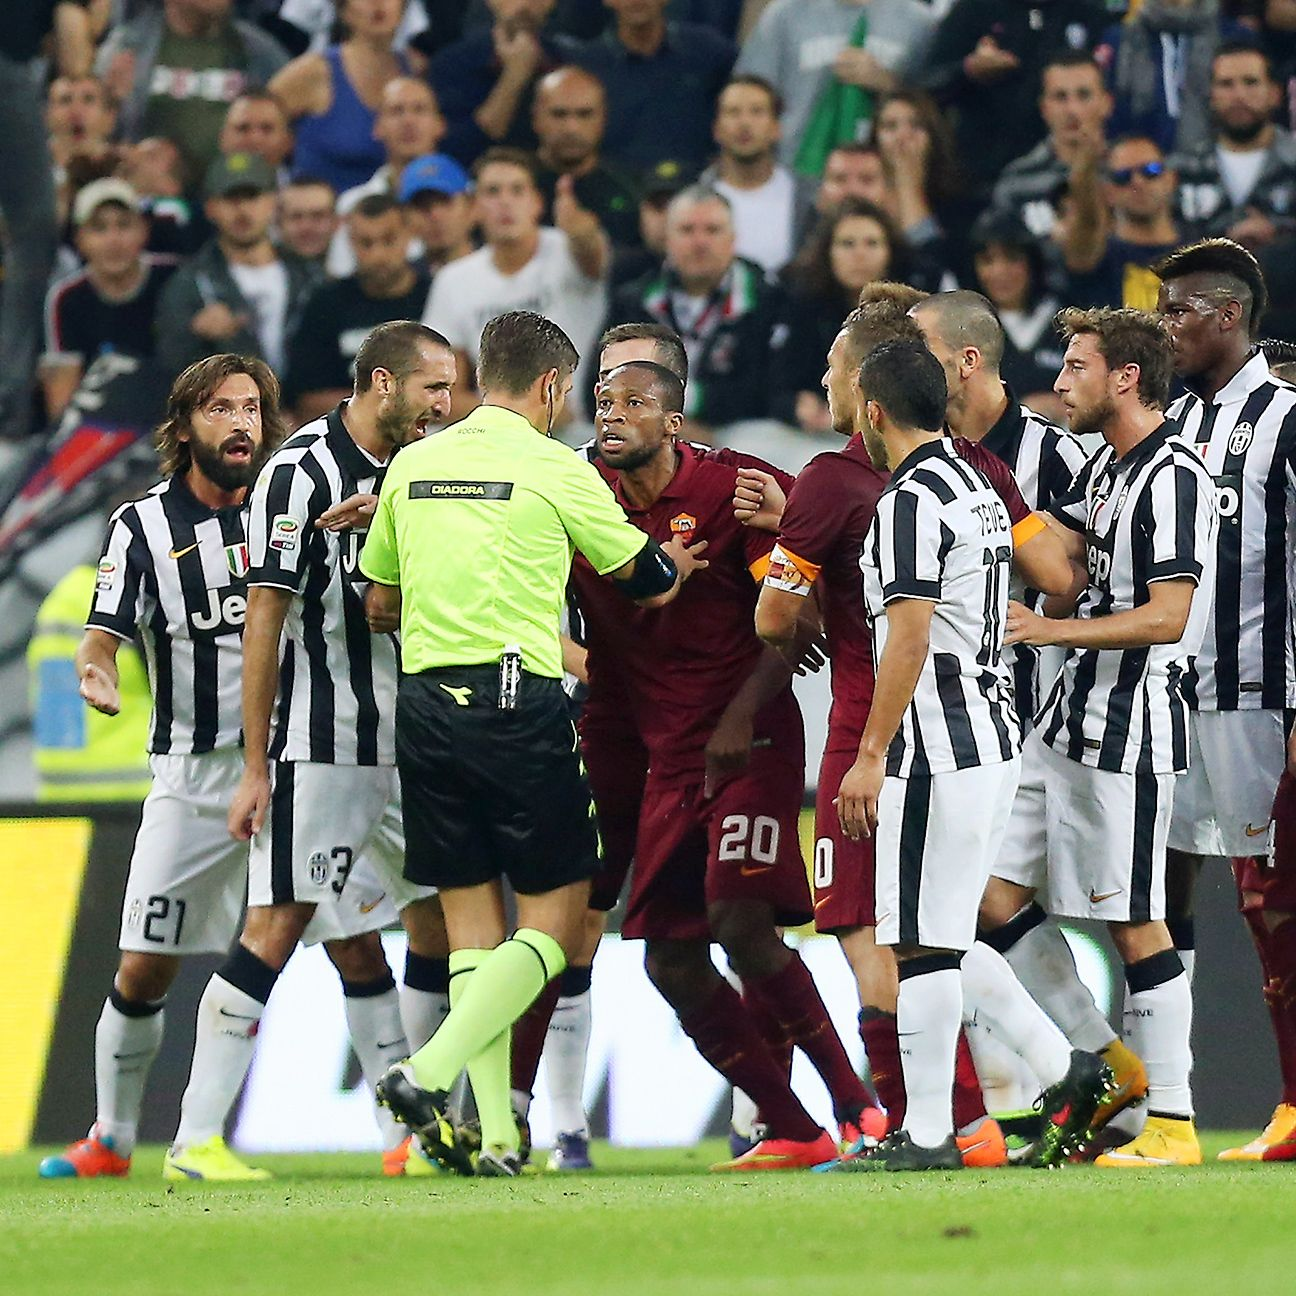 Words continue to be exchanged between Juventus and Roma following their controversial Sunday encounter.